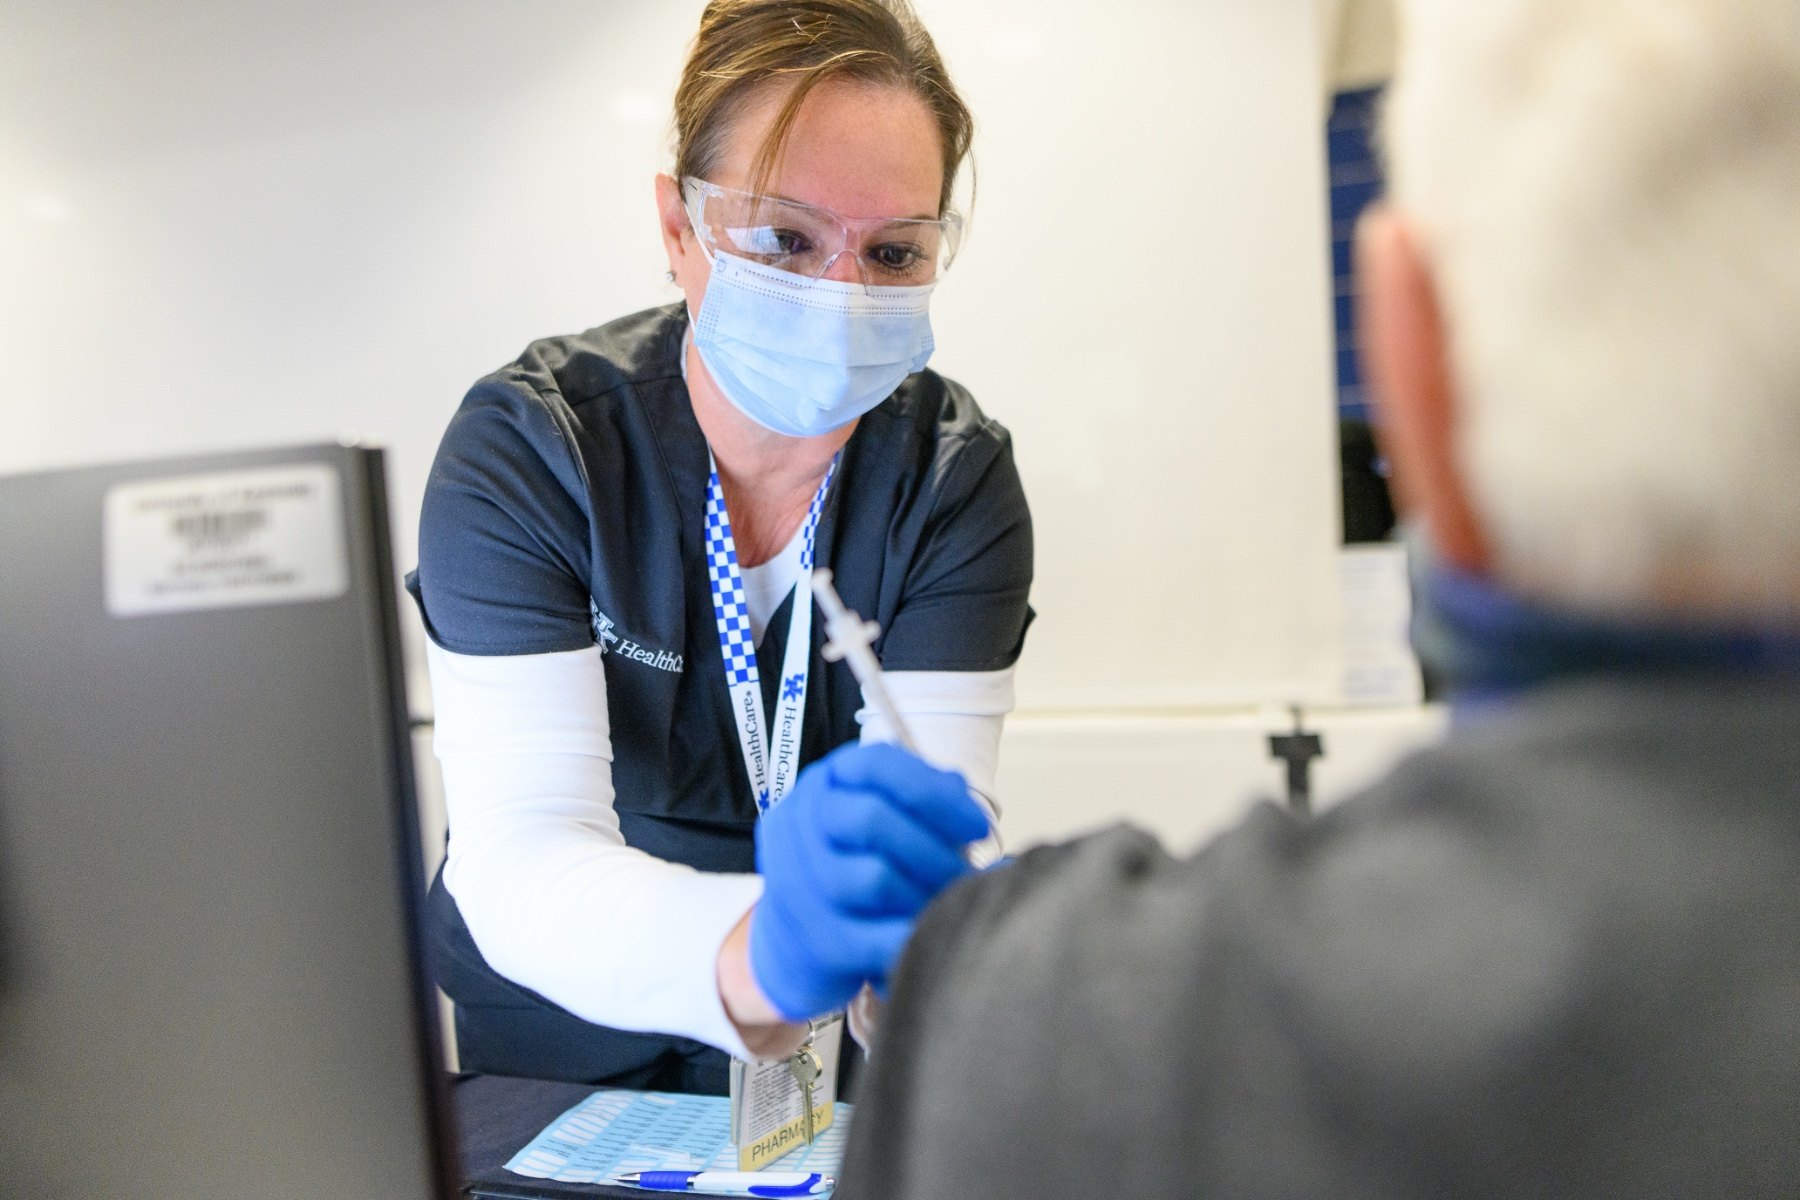 A female UK HealthCare staff member is administering the COVID vaccine to an older gentleman.